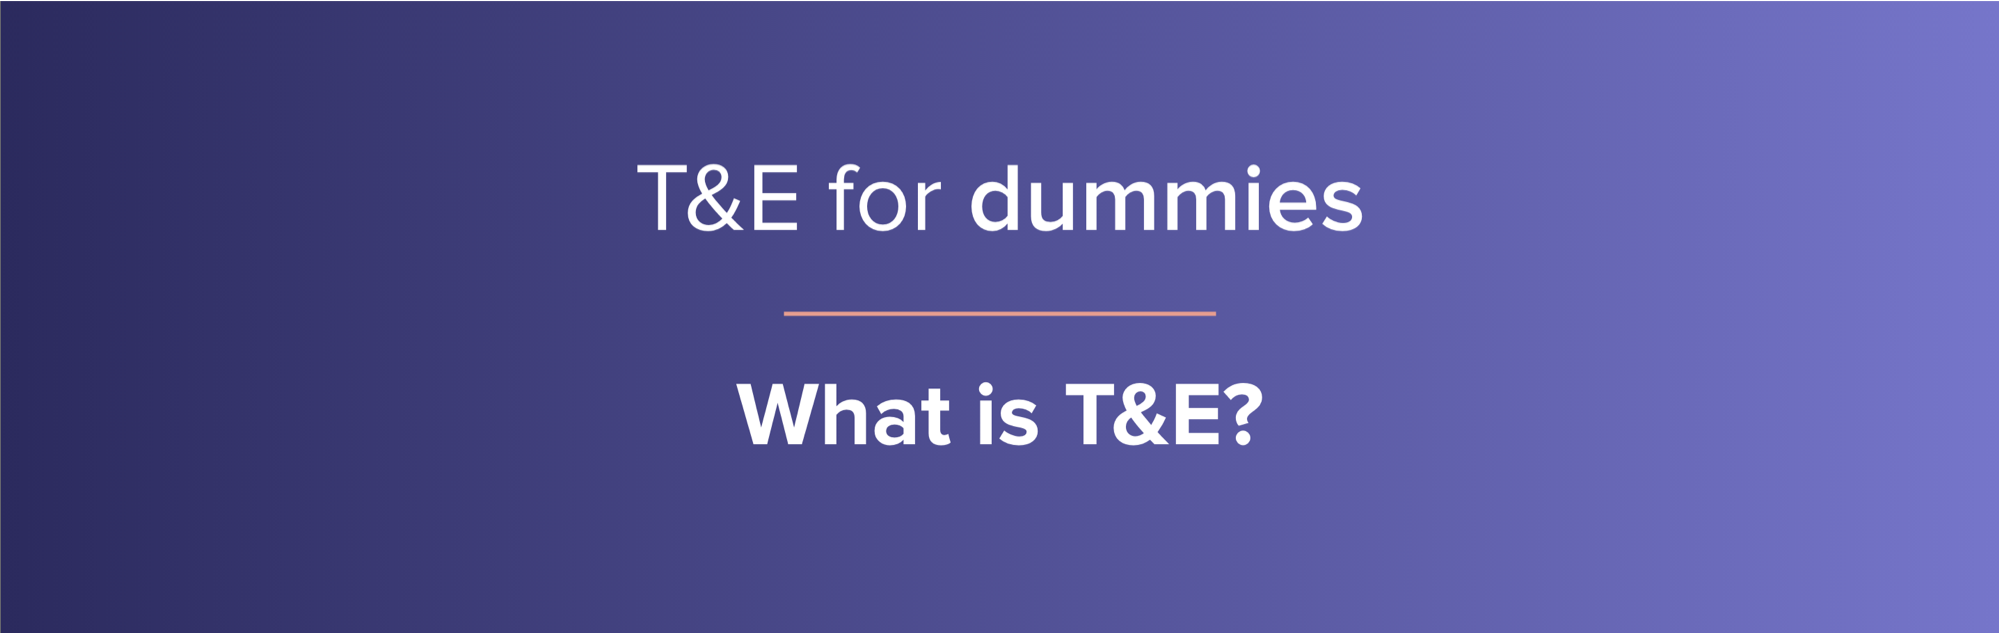 what is T&E